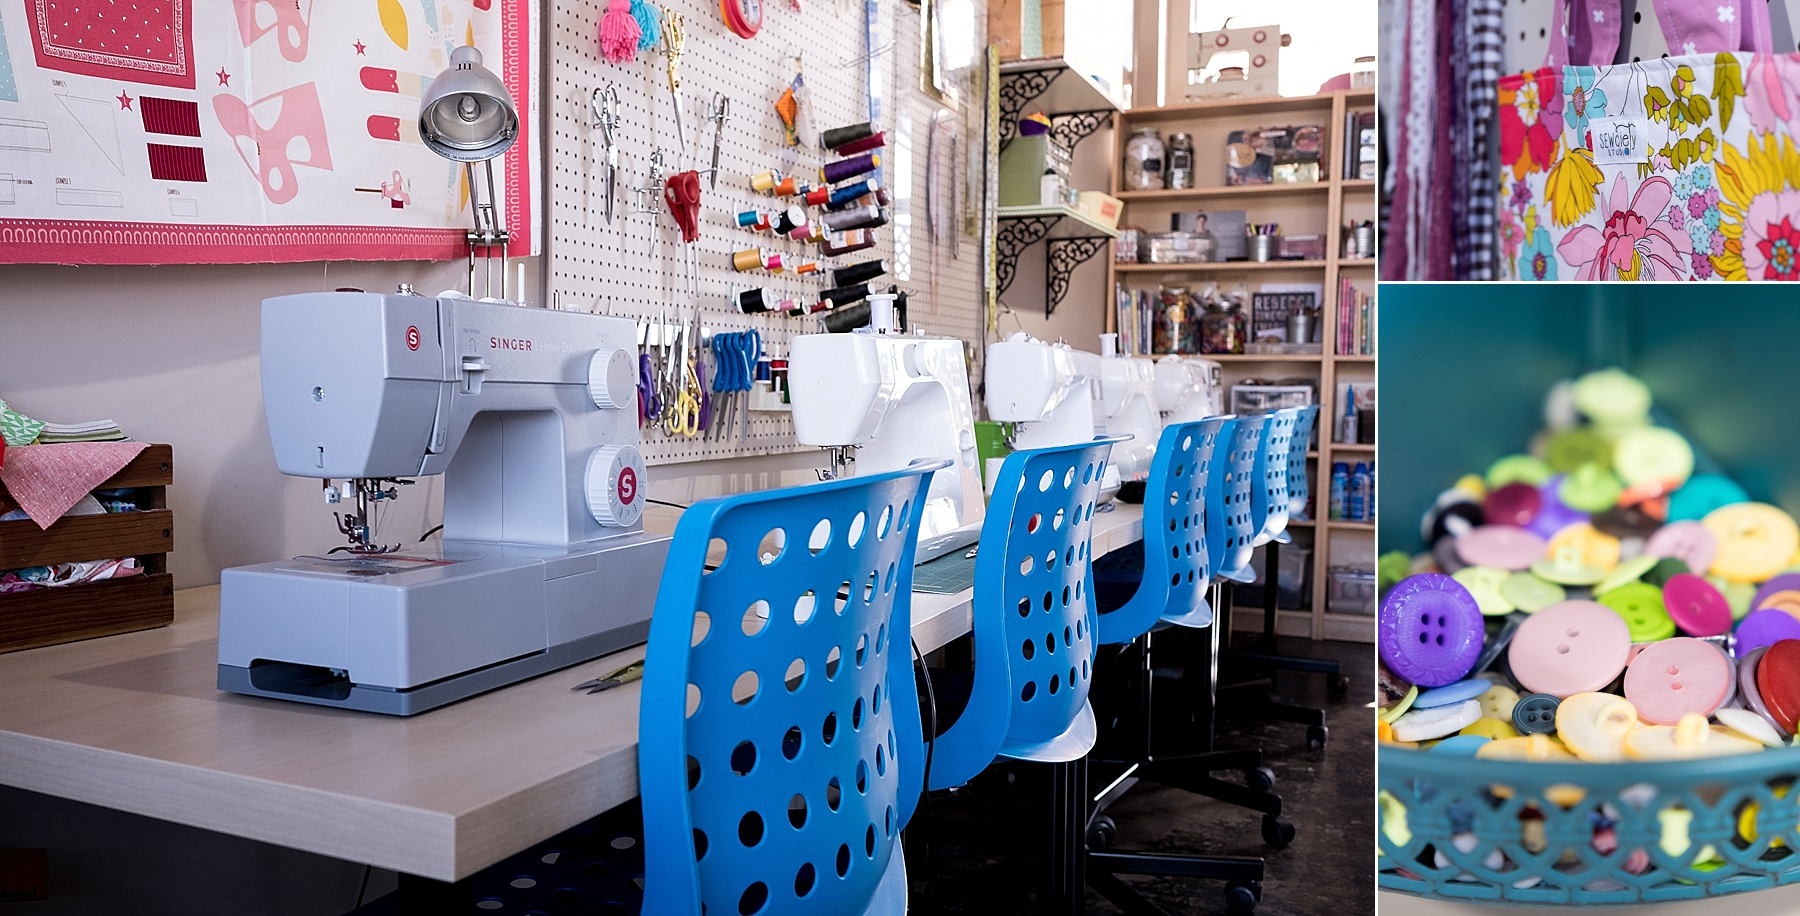 Small Business features by Erica Faith Photography in Claremont, CA.